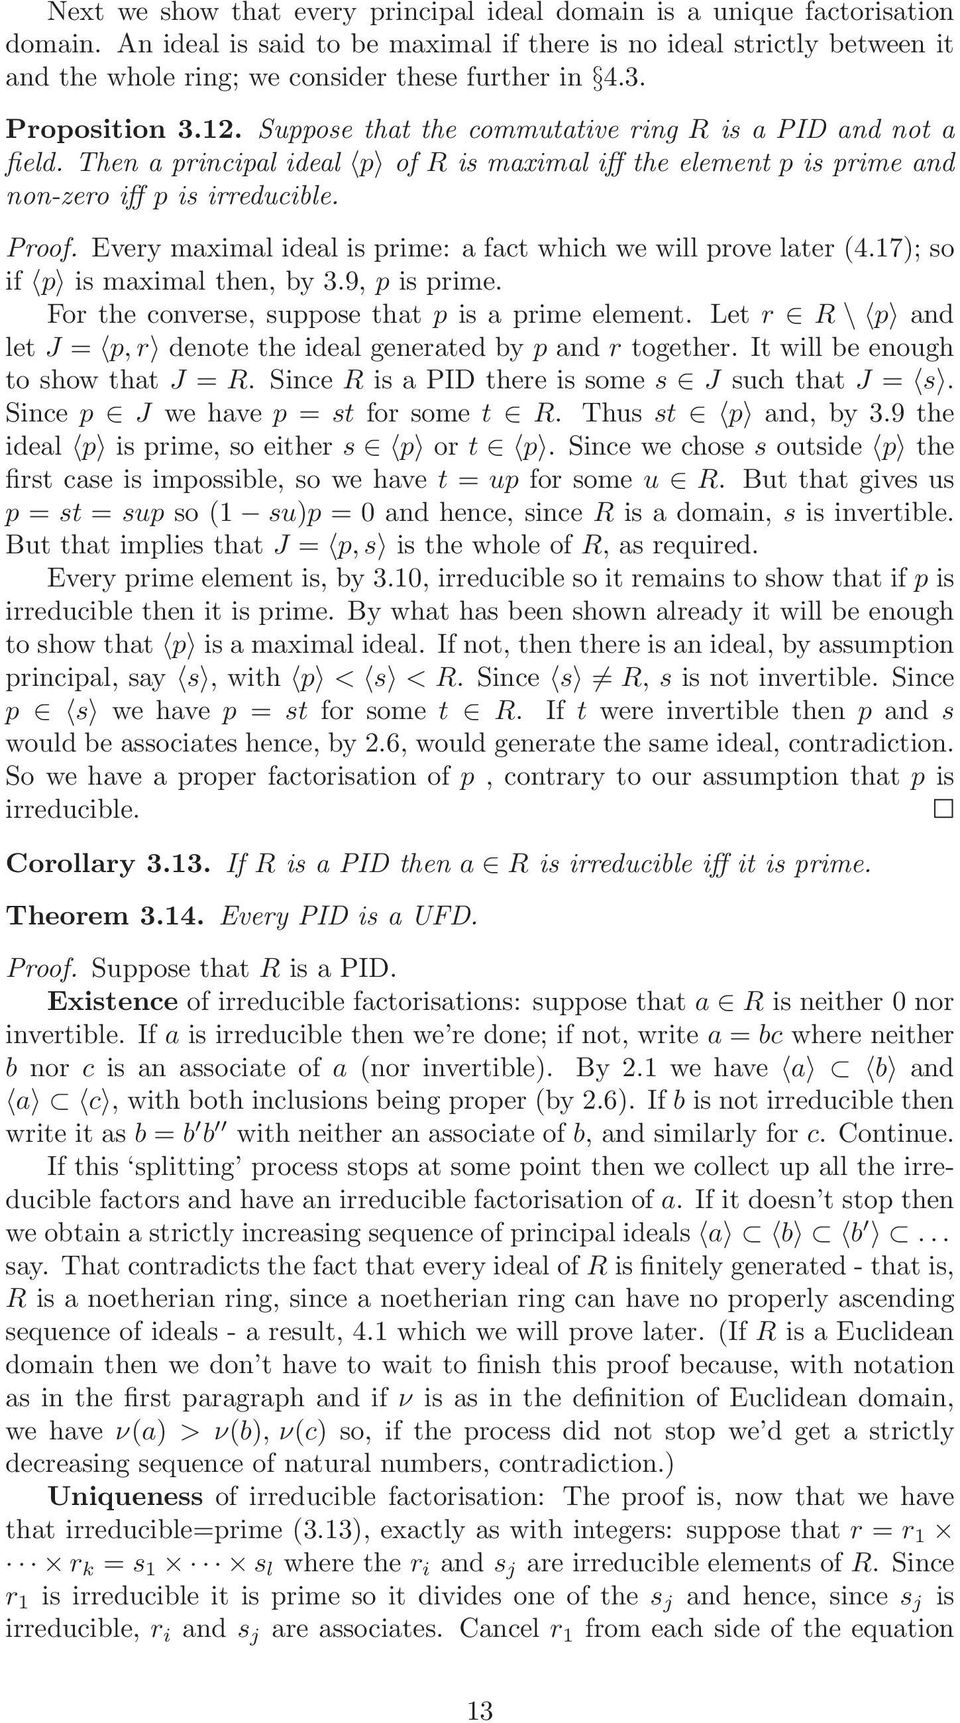 Suppose that the commutative ring R is a PID and not a field. Then a principal ideal p of R is maximal iff the element p is prime and non-zero iff p is irreducible. Proof.